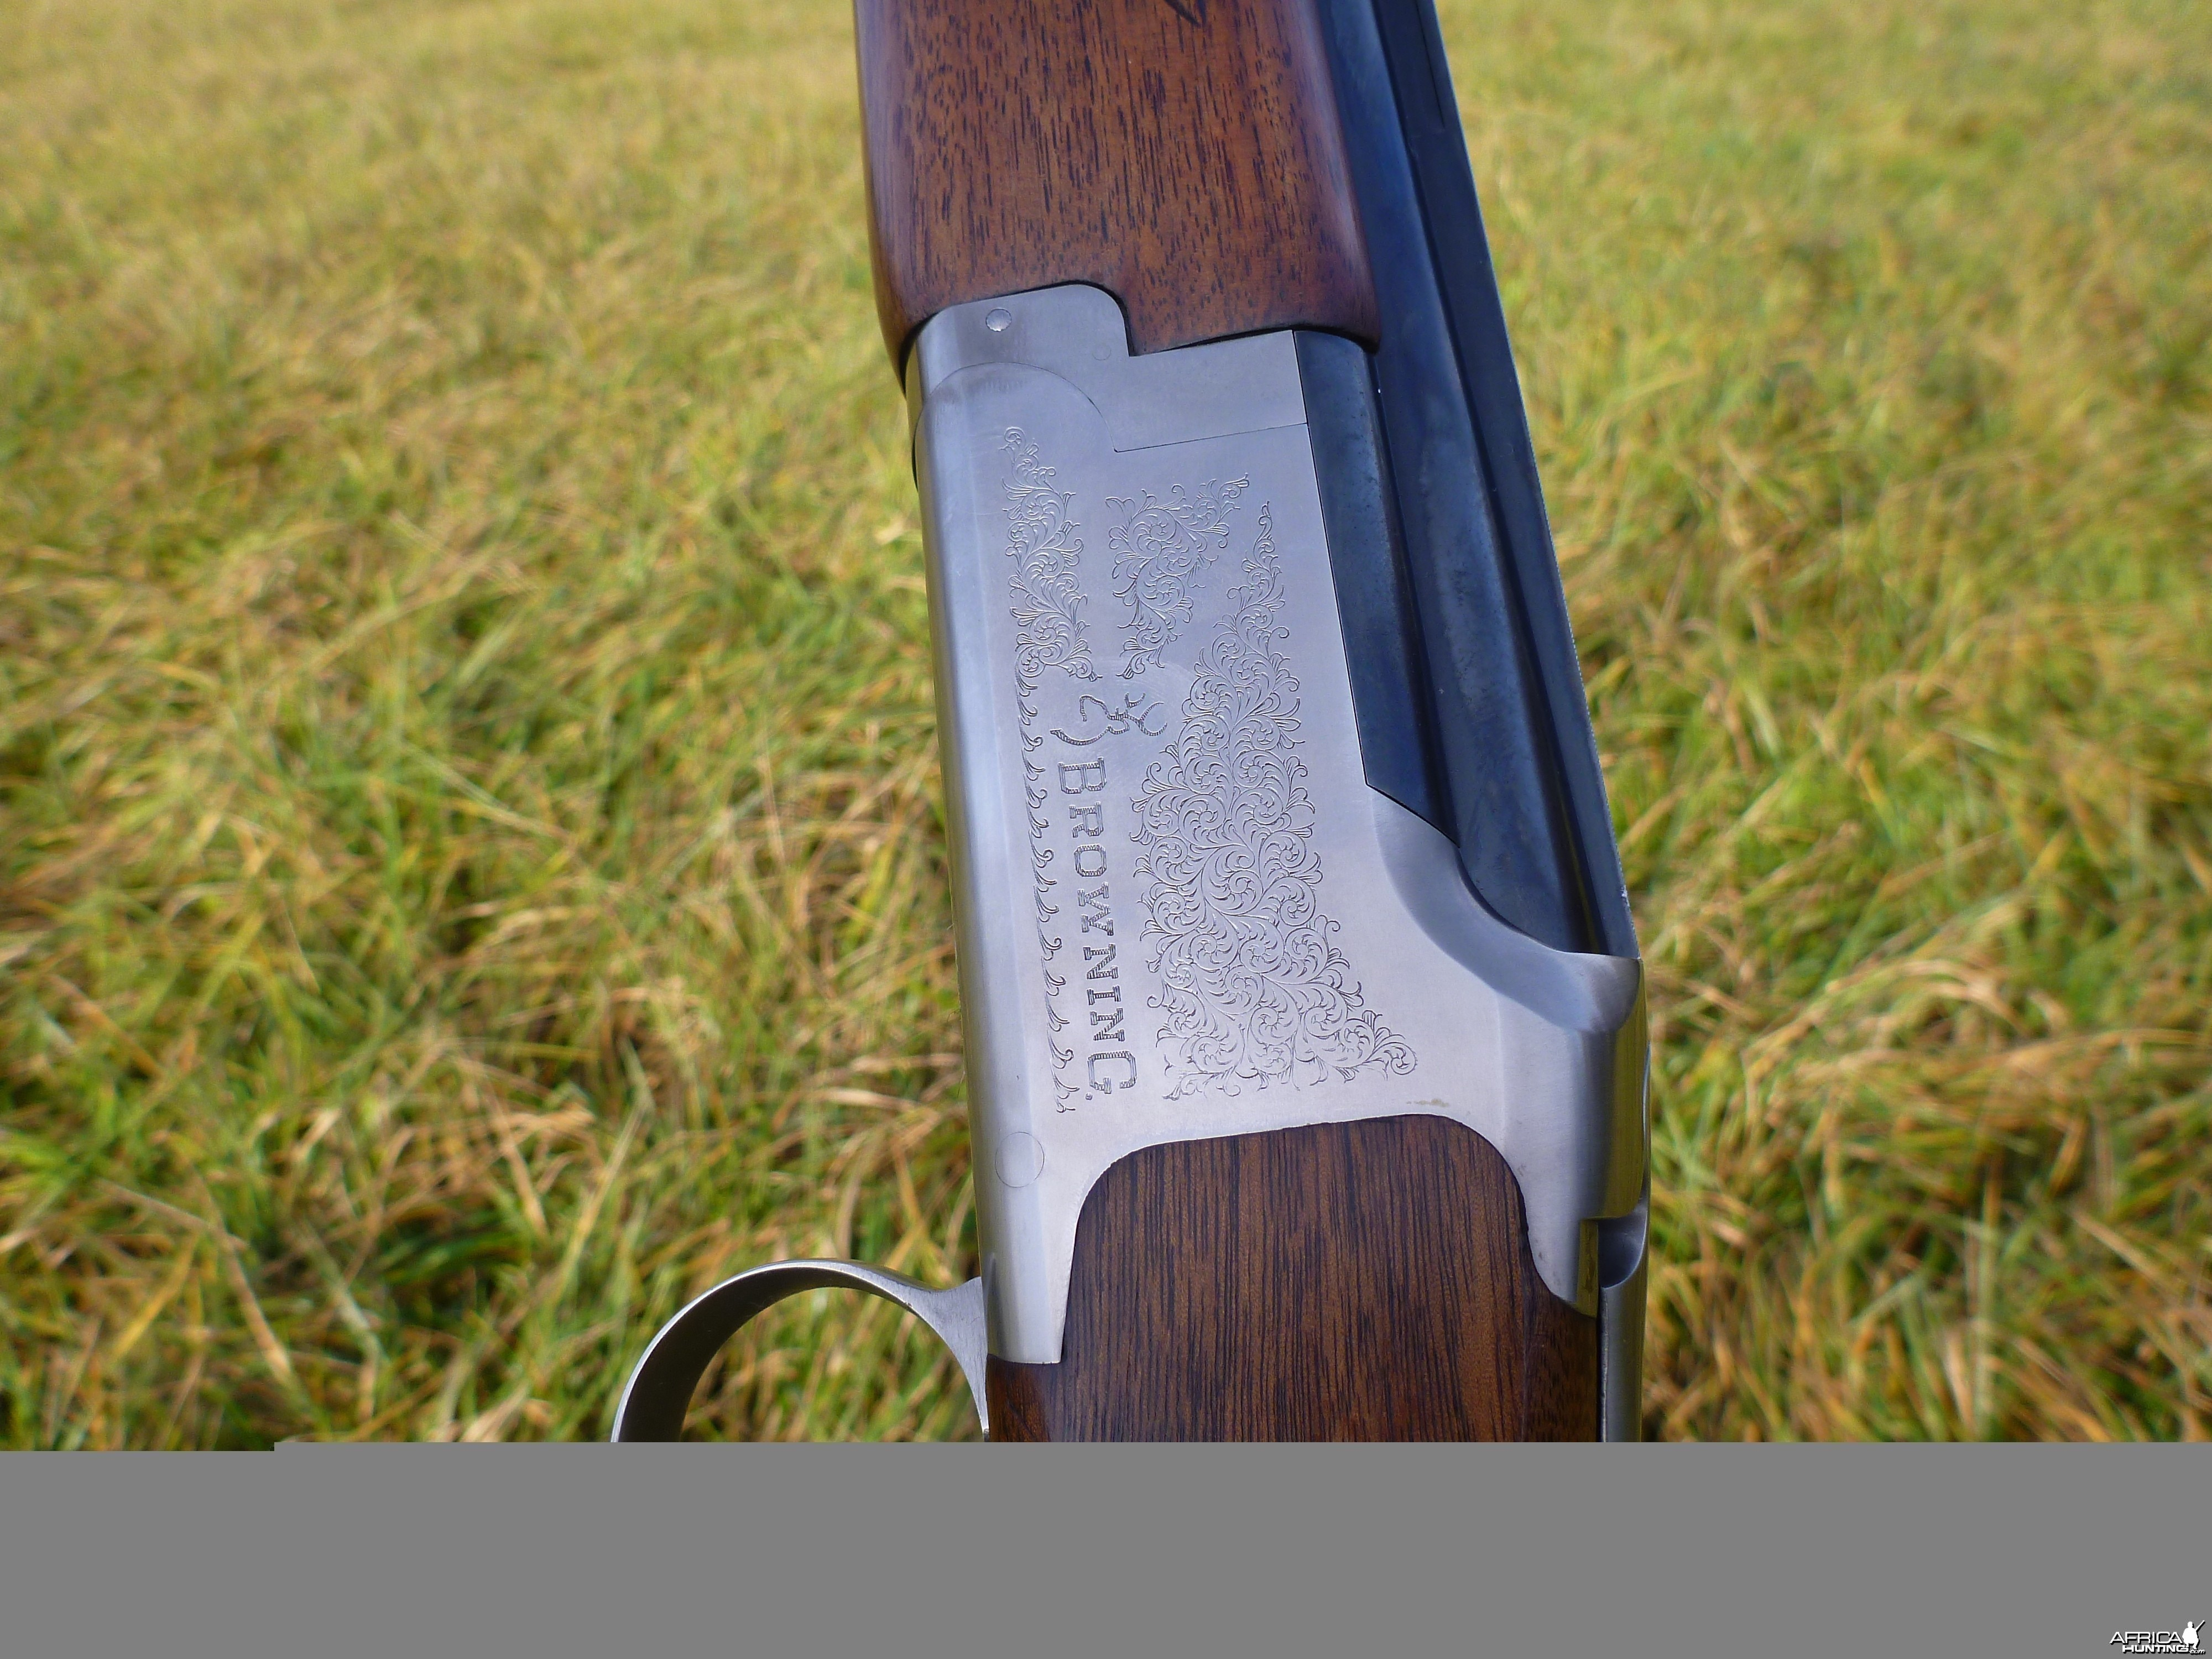 20 Gauge Browning